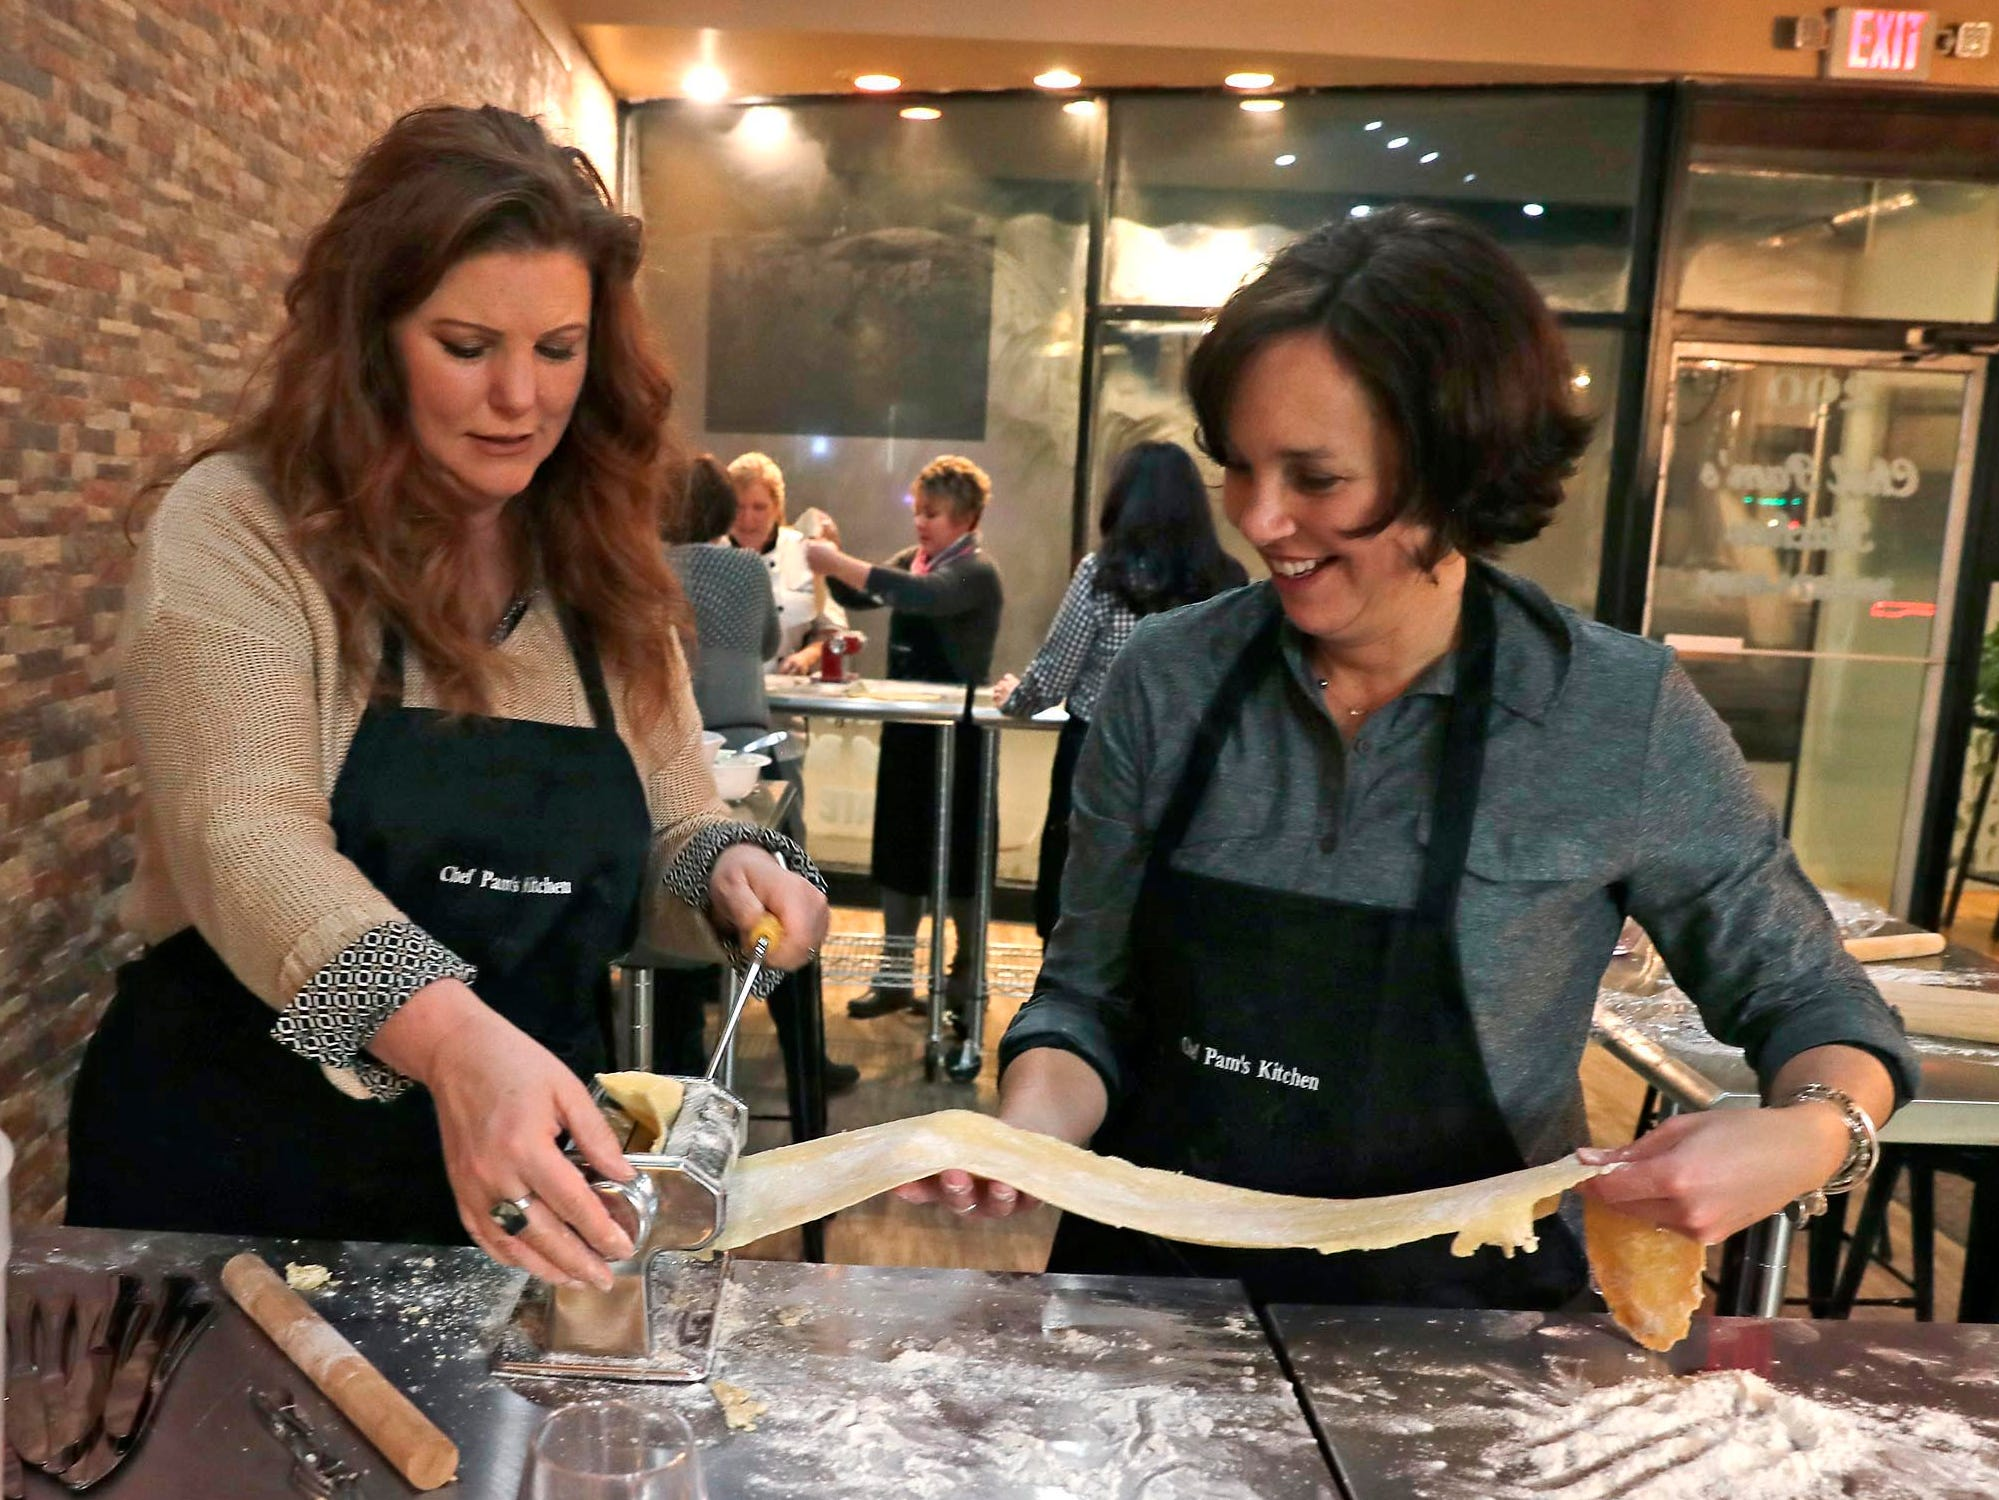 The pasta dough gets longer and thinner with each pass through the machine, as Chris Liedtke (left) and Beth Zeiler discovered.